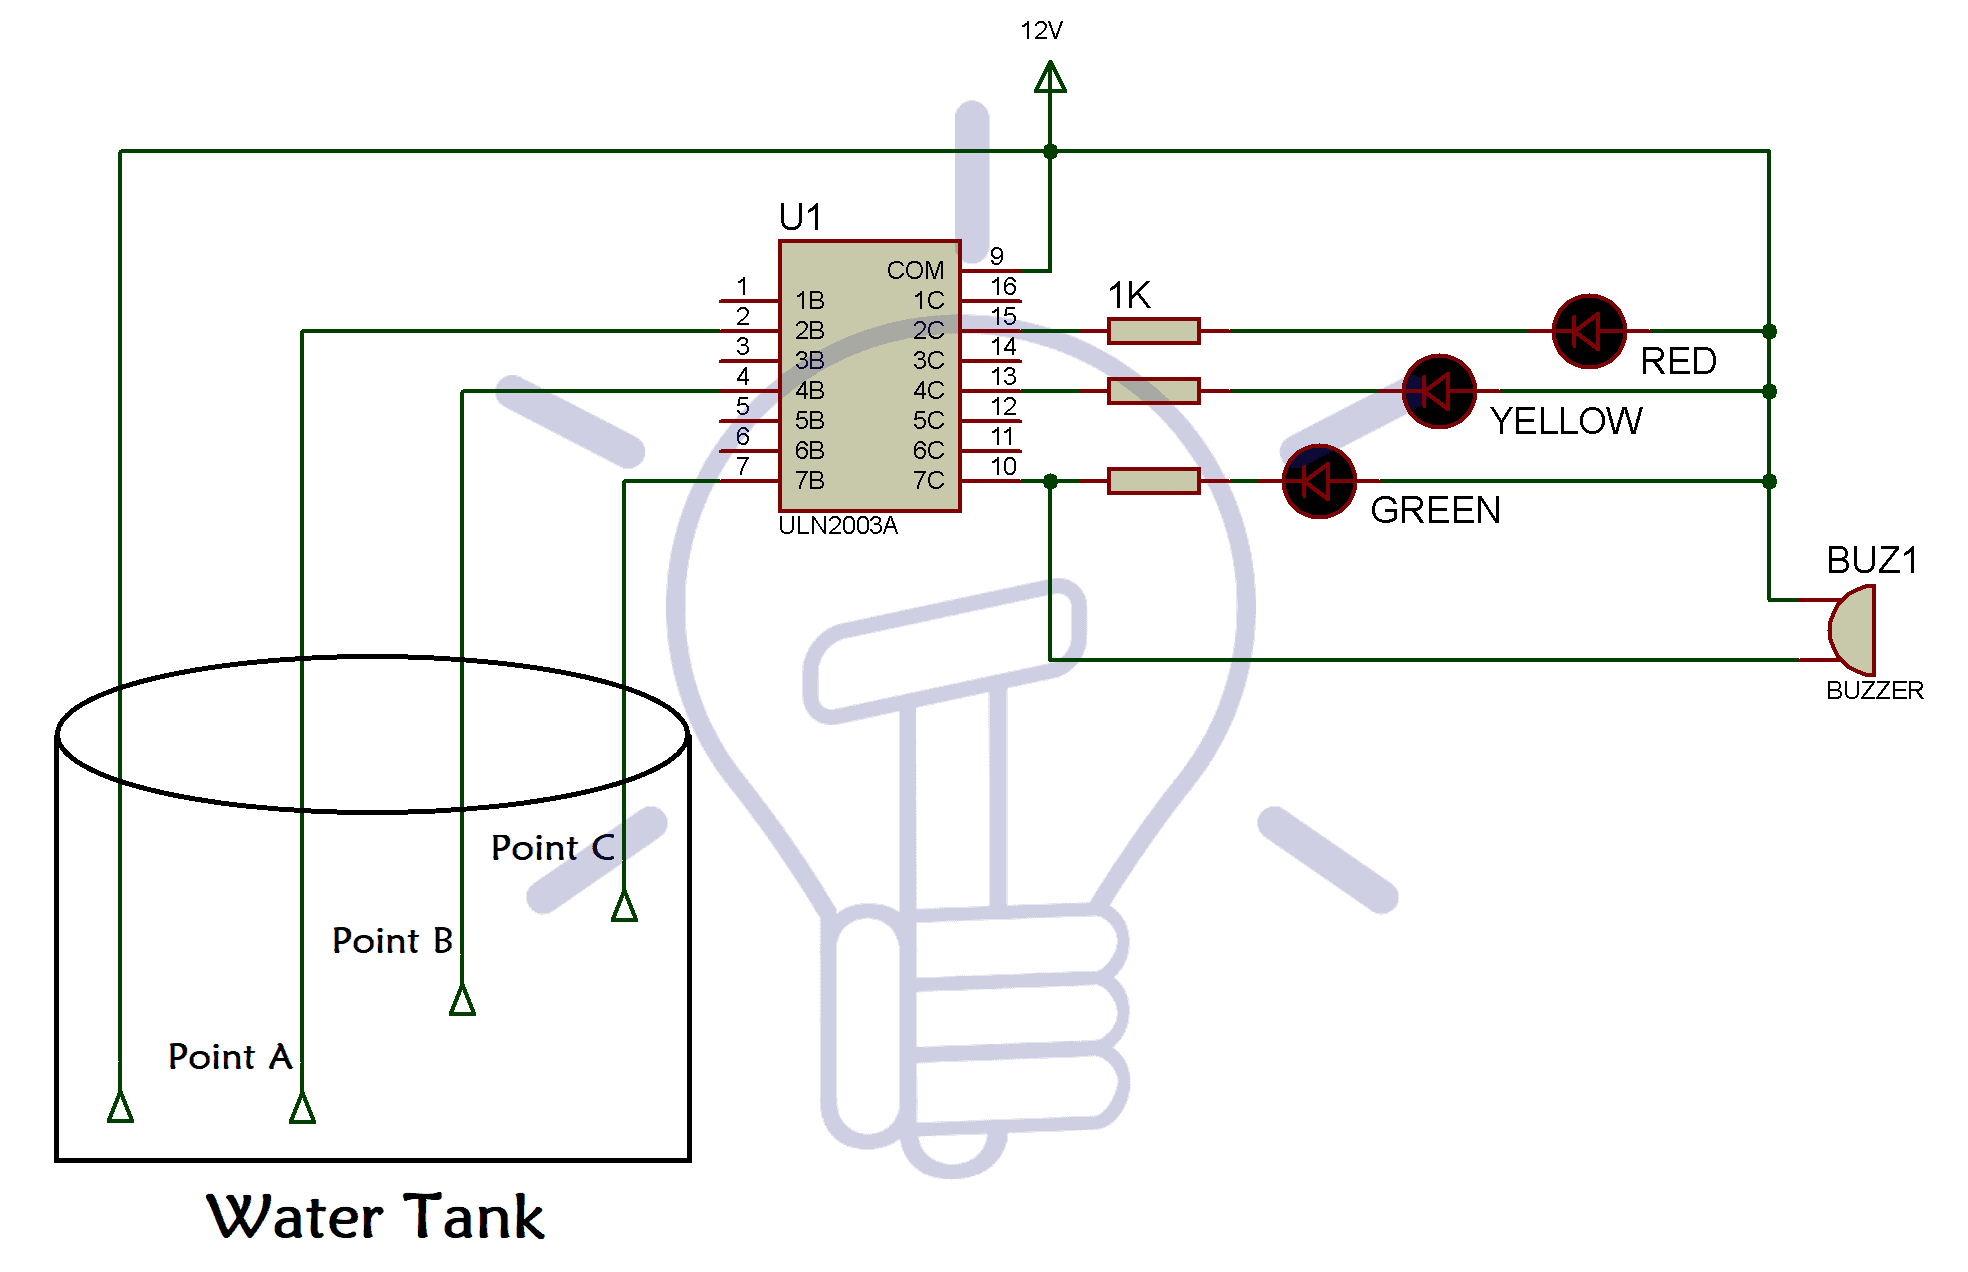 Water Level Indicator Circuit Diagram Using Bc547 And Uln